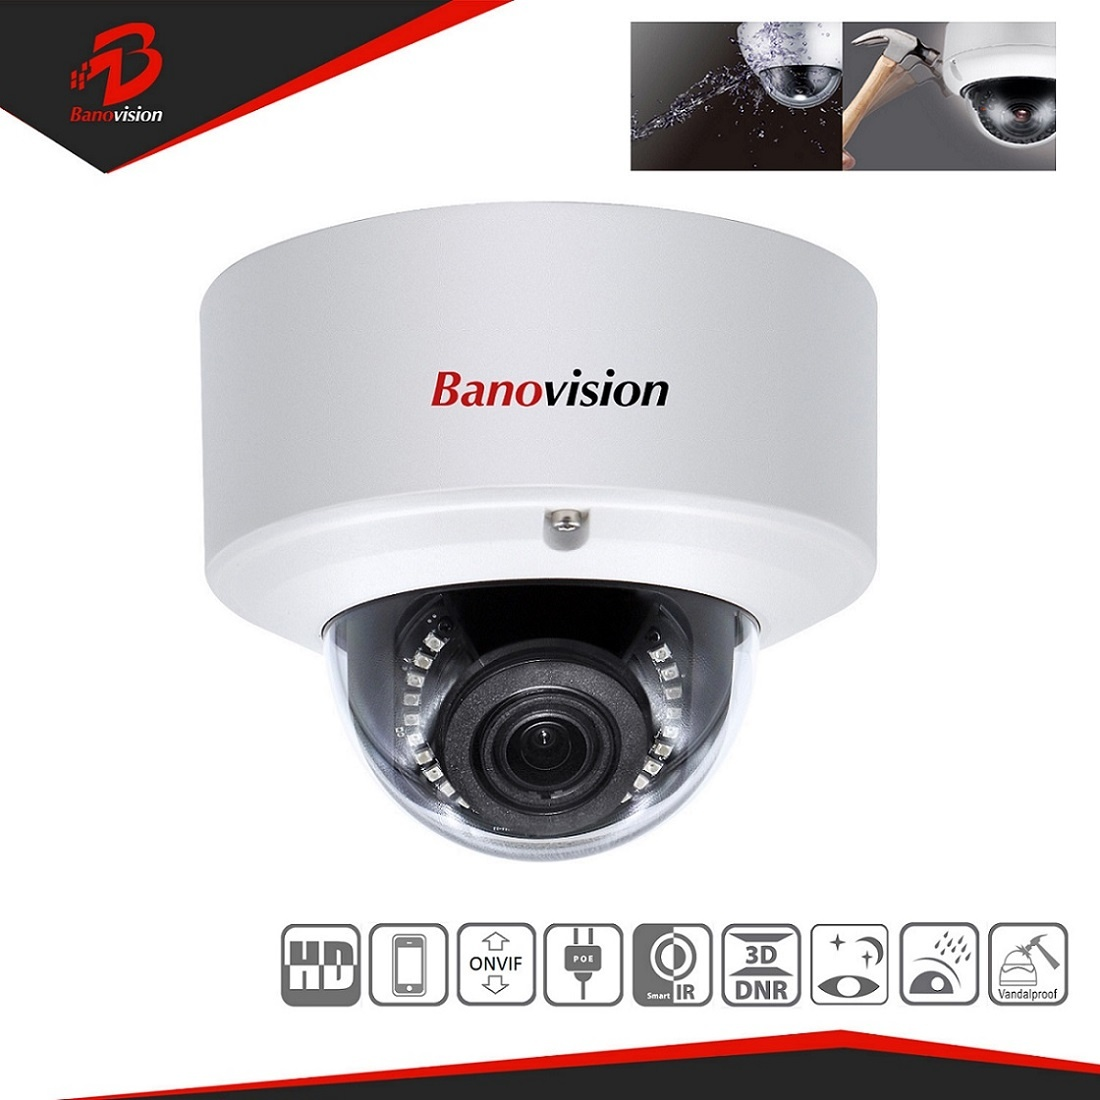 Super HD 8MP IP Dome Camera with Varifocal Lens